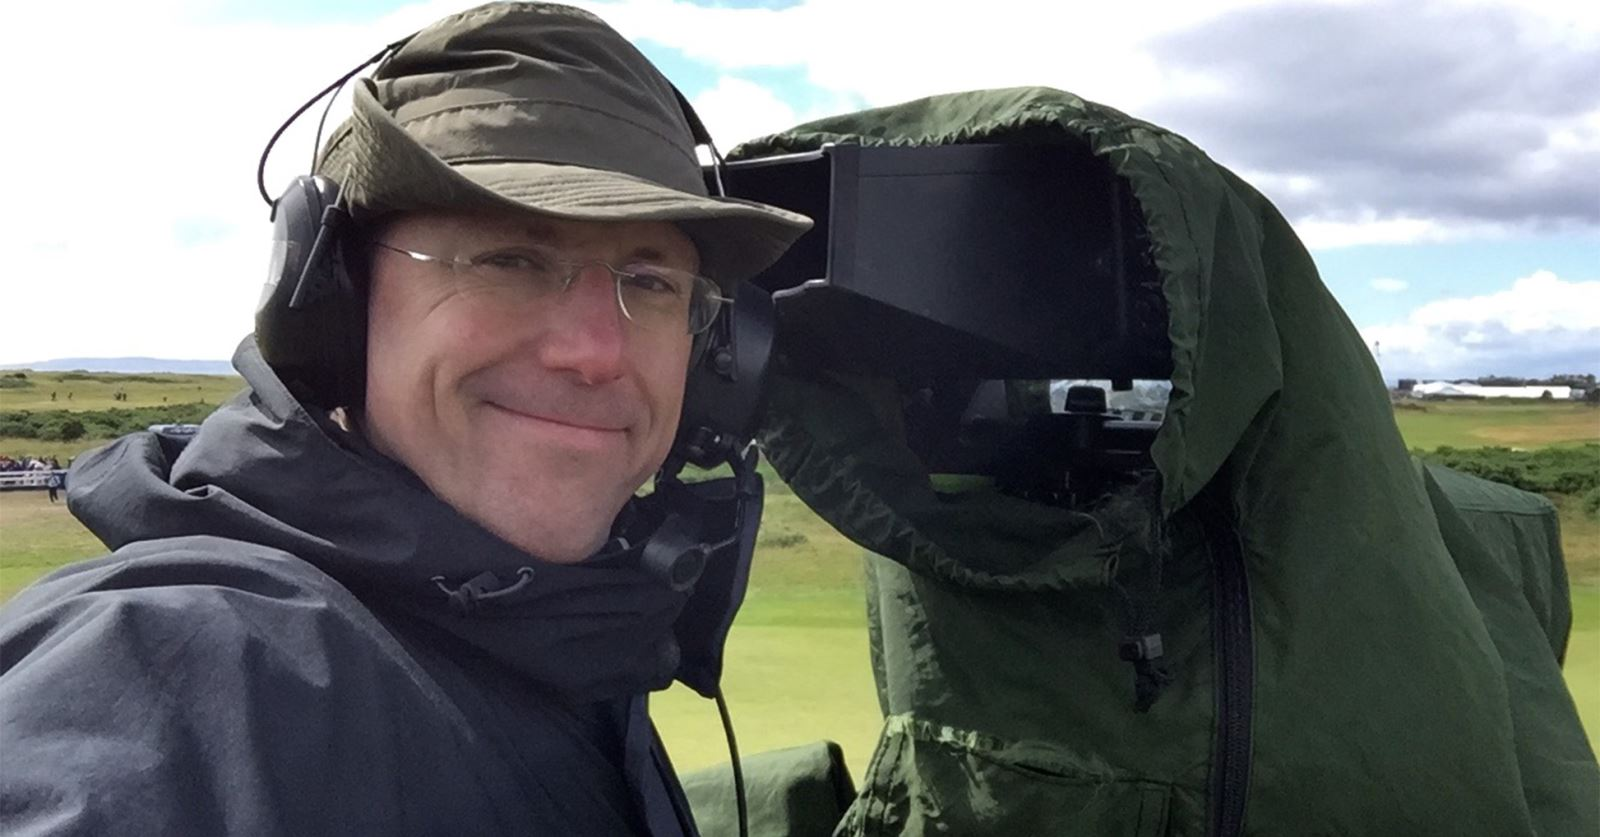 Doing his 'Day Job' - the GTC Treasurer Simon Roe wrapped up against the elements at Royal Troon for the Open Golf